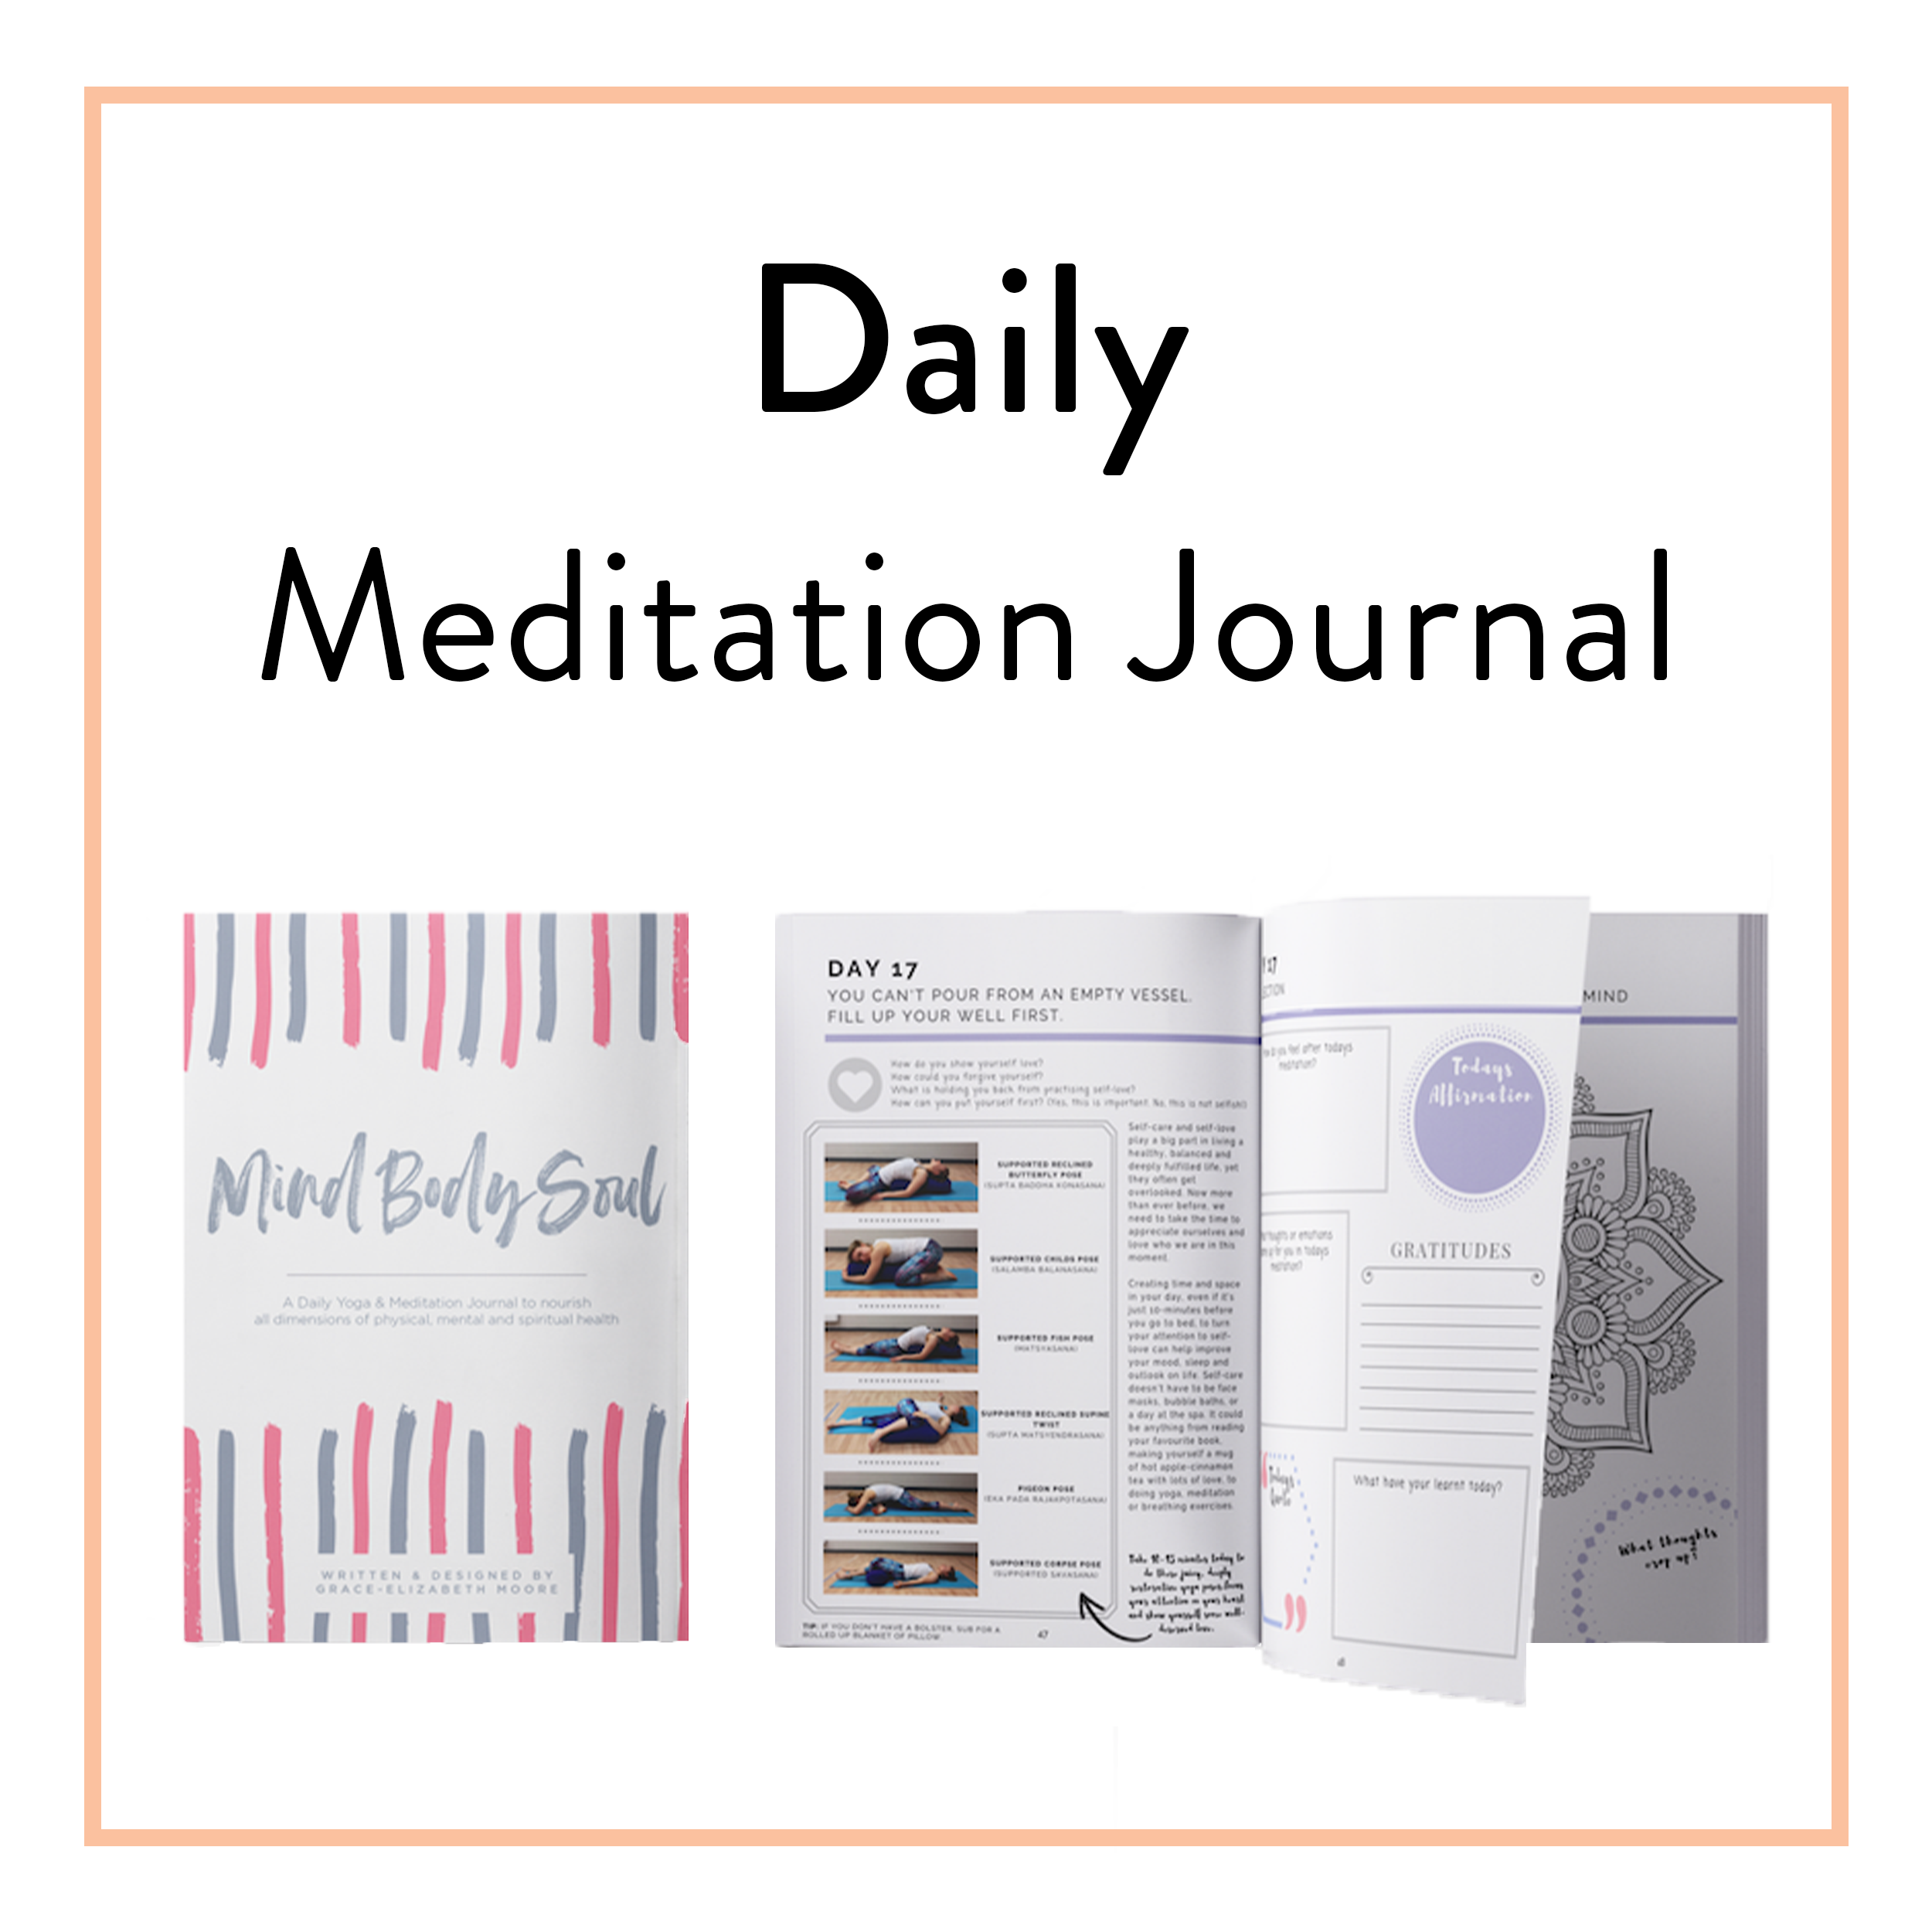 Daily Meditation Journal.png